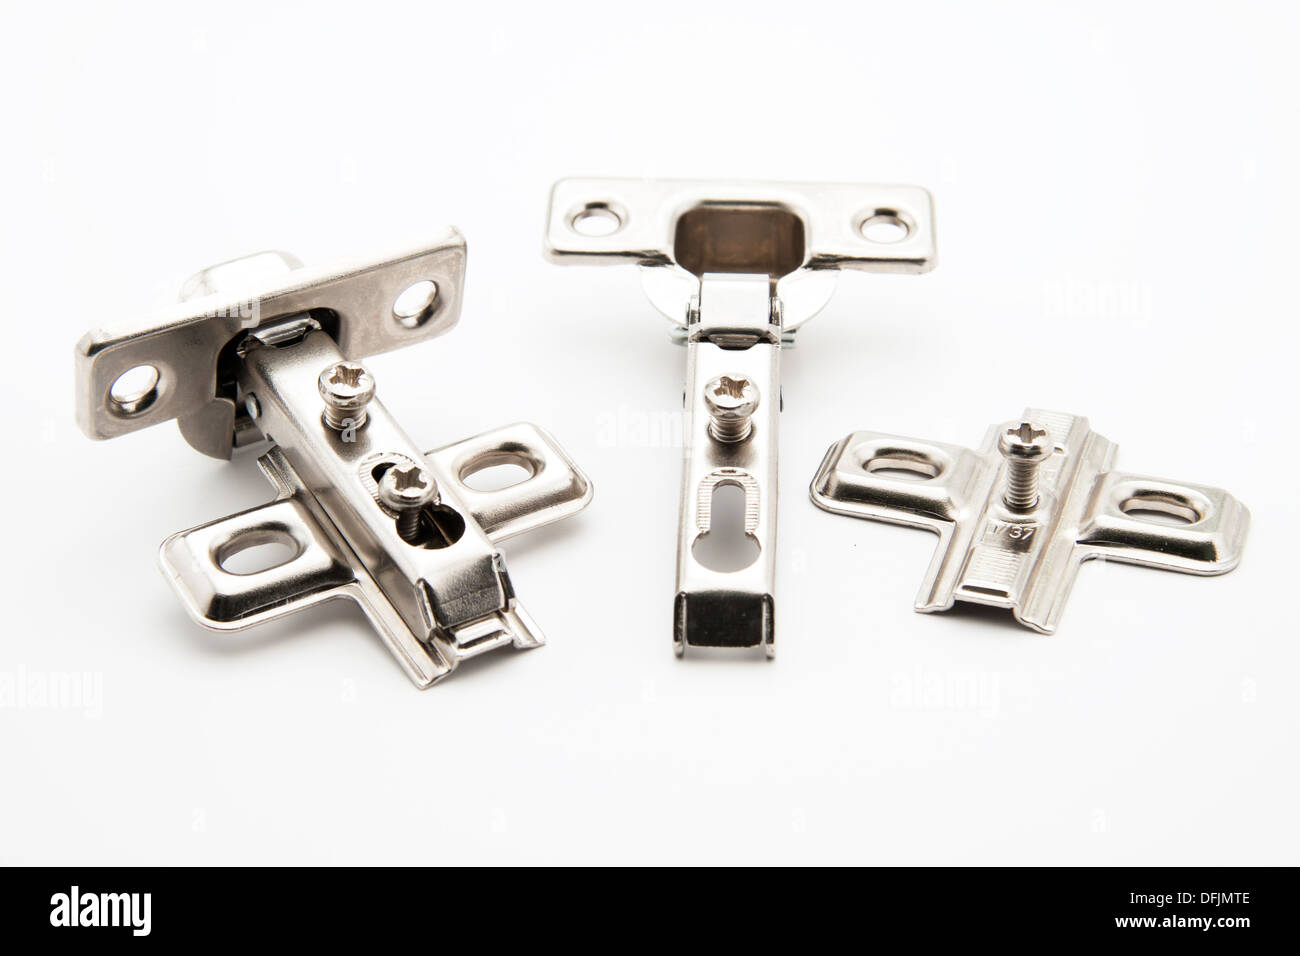 Furniture door hinge connectors on white background - Stock Image